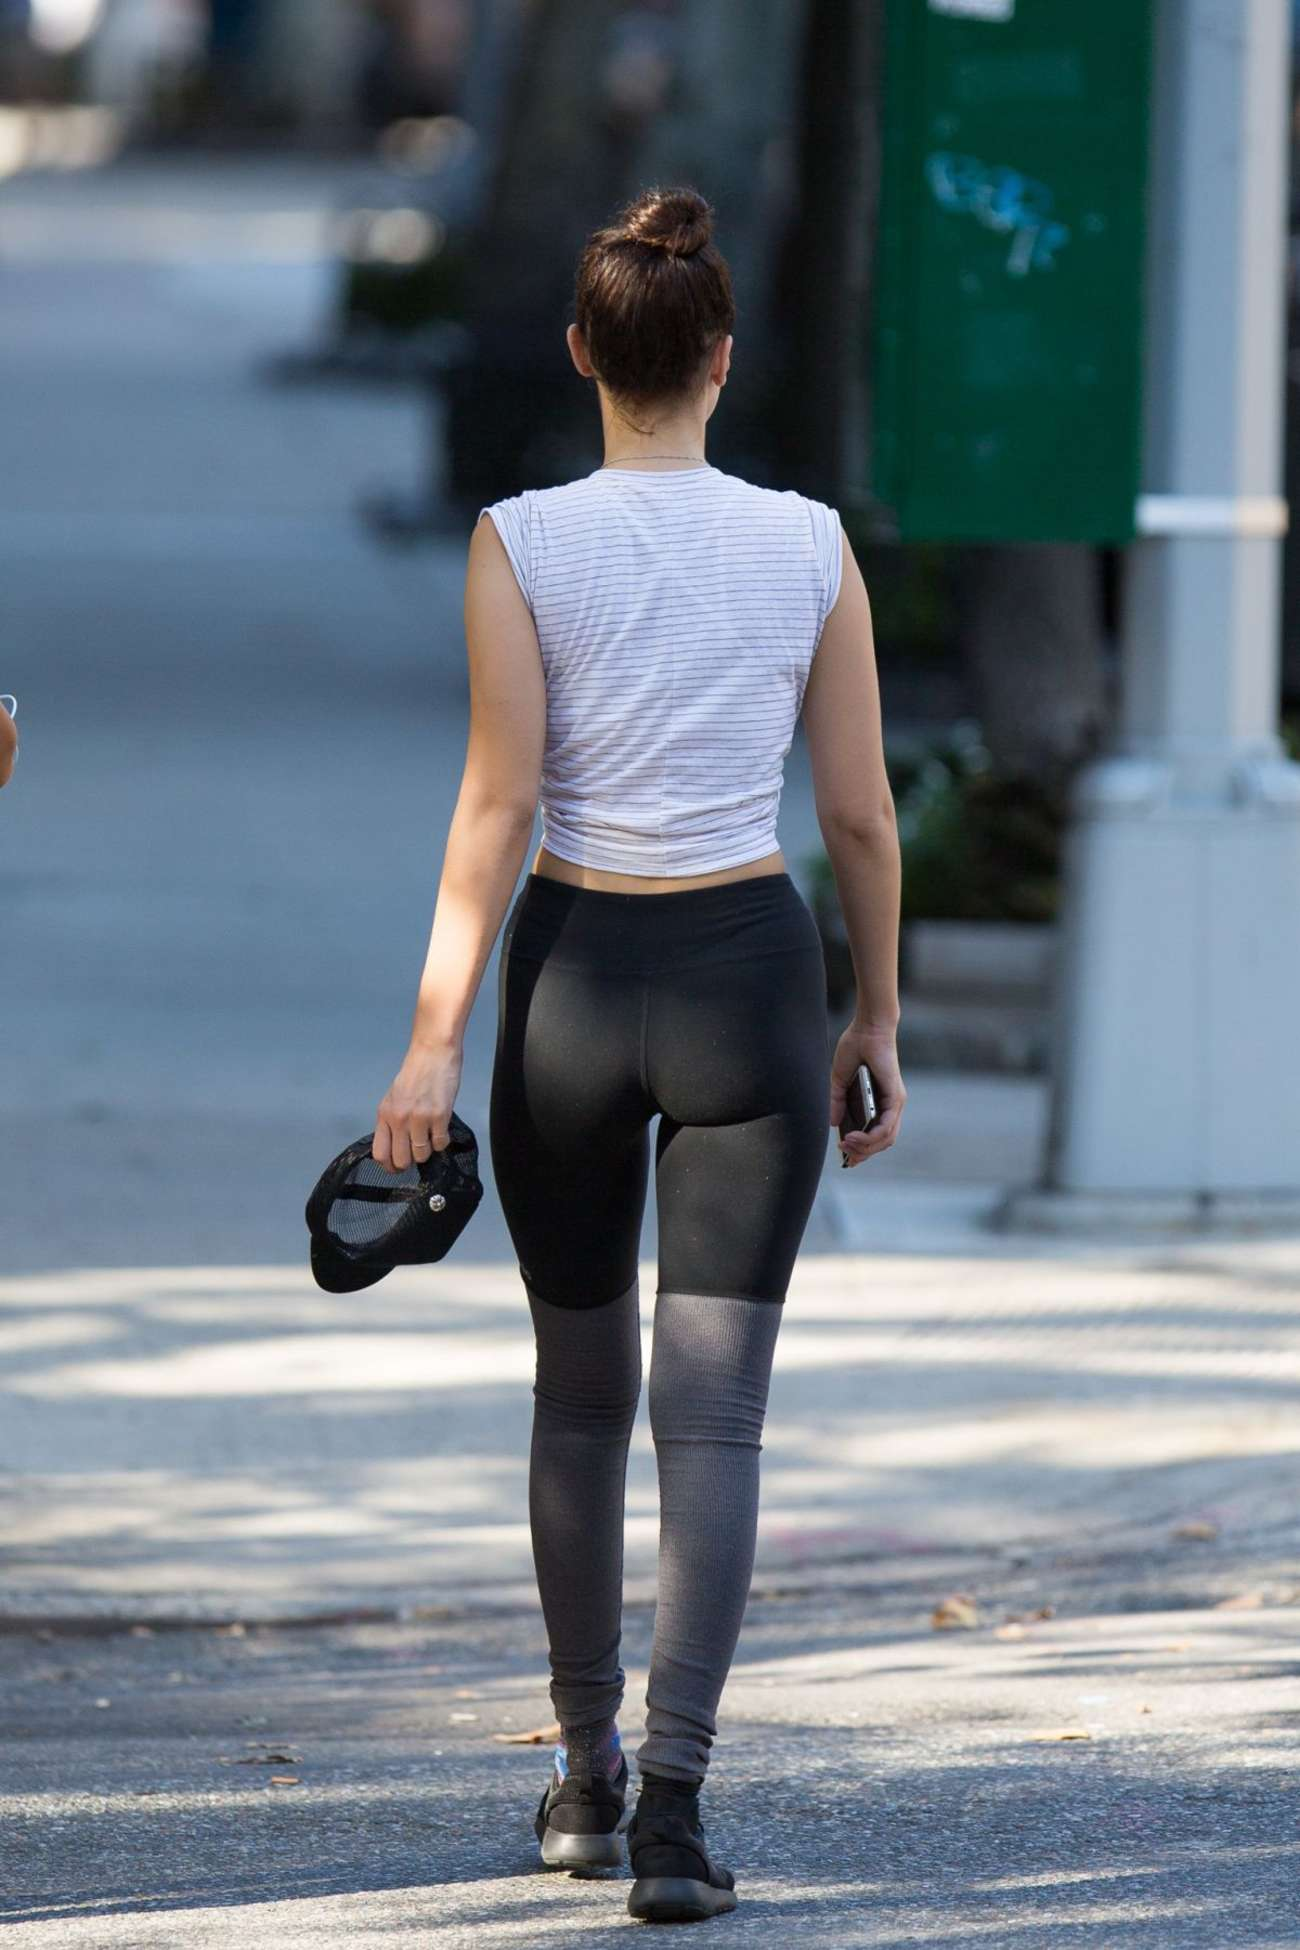 Booty Bella Hadid naked (78 foto and video), Sexy, Paparazzi, Feet, braless 2006